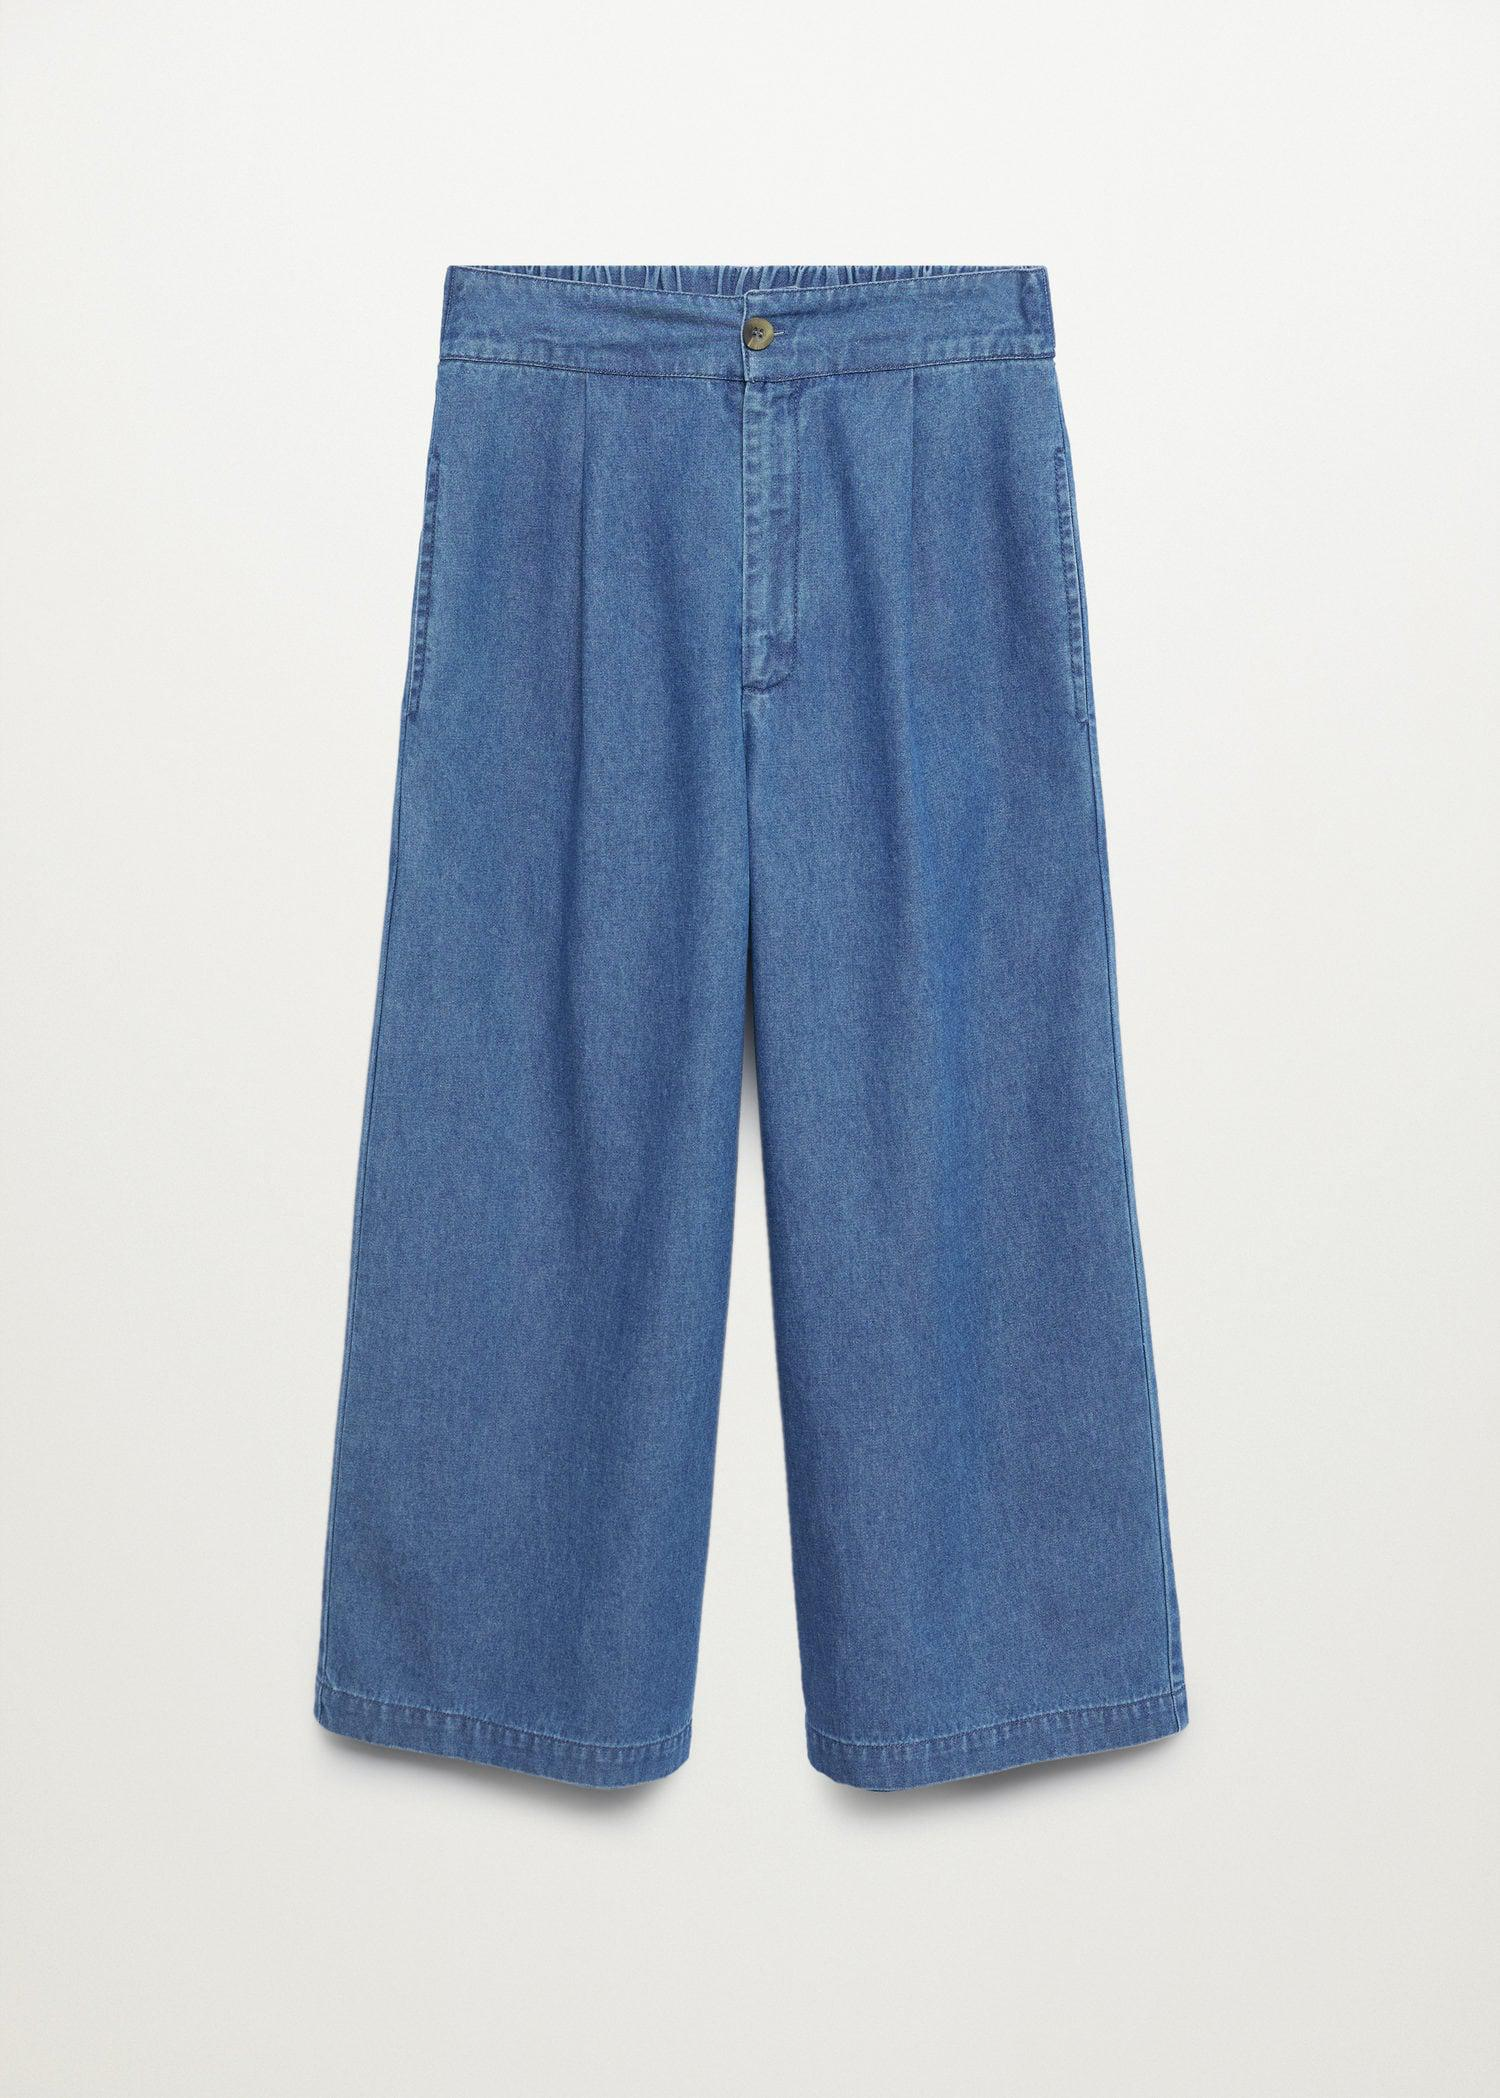 Pleated culottes pants 6